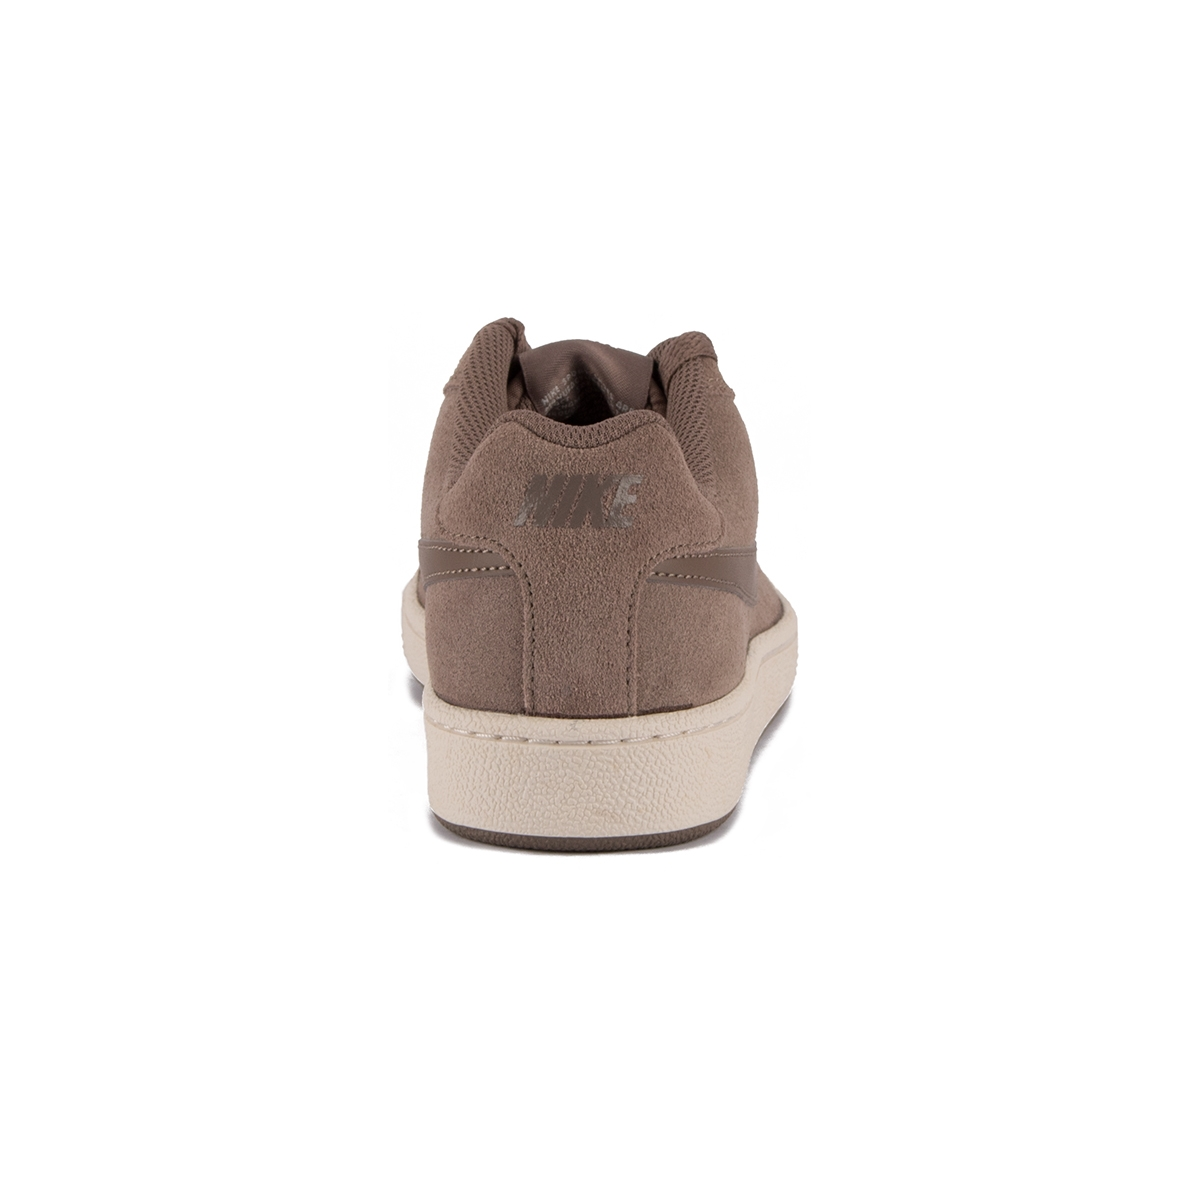 Nike Zapatillas Wmns Court Royale Suede Mink Brown